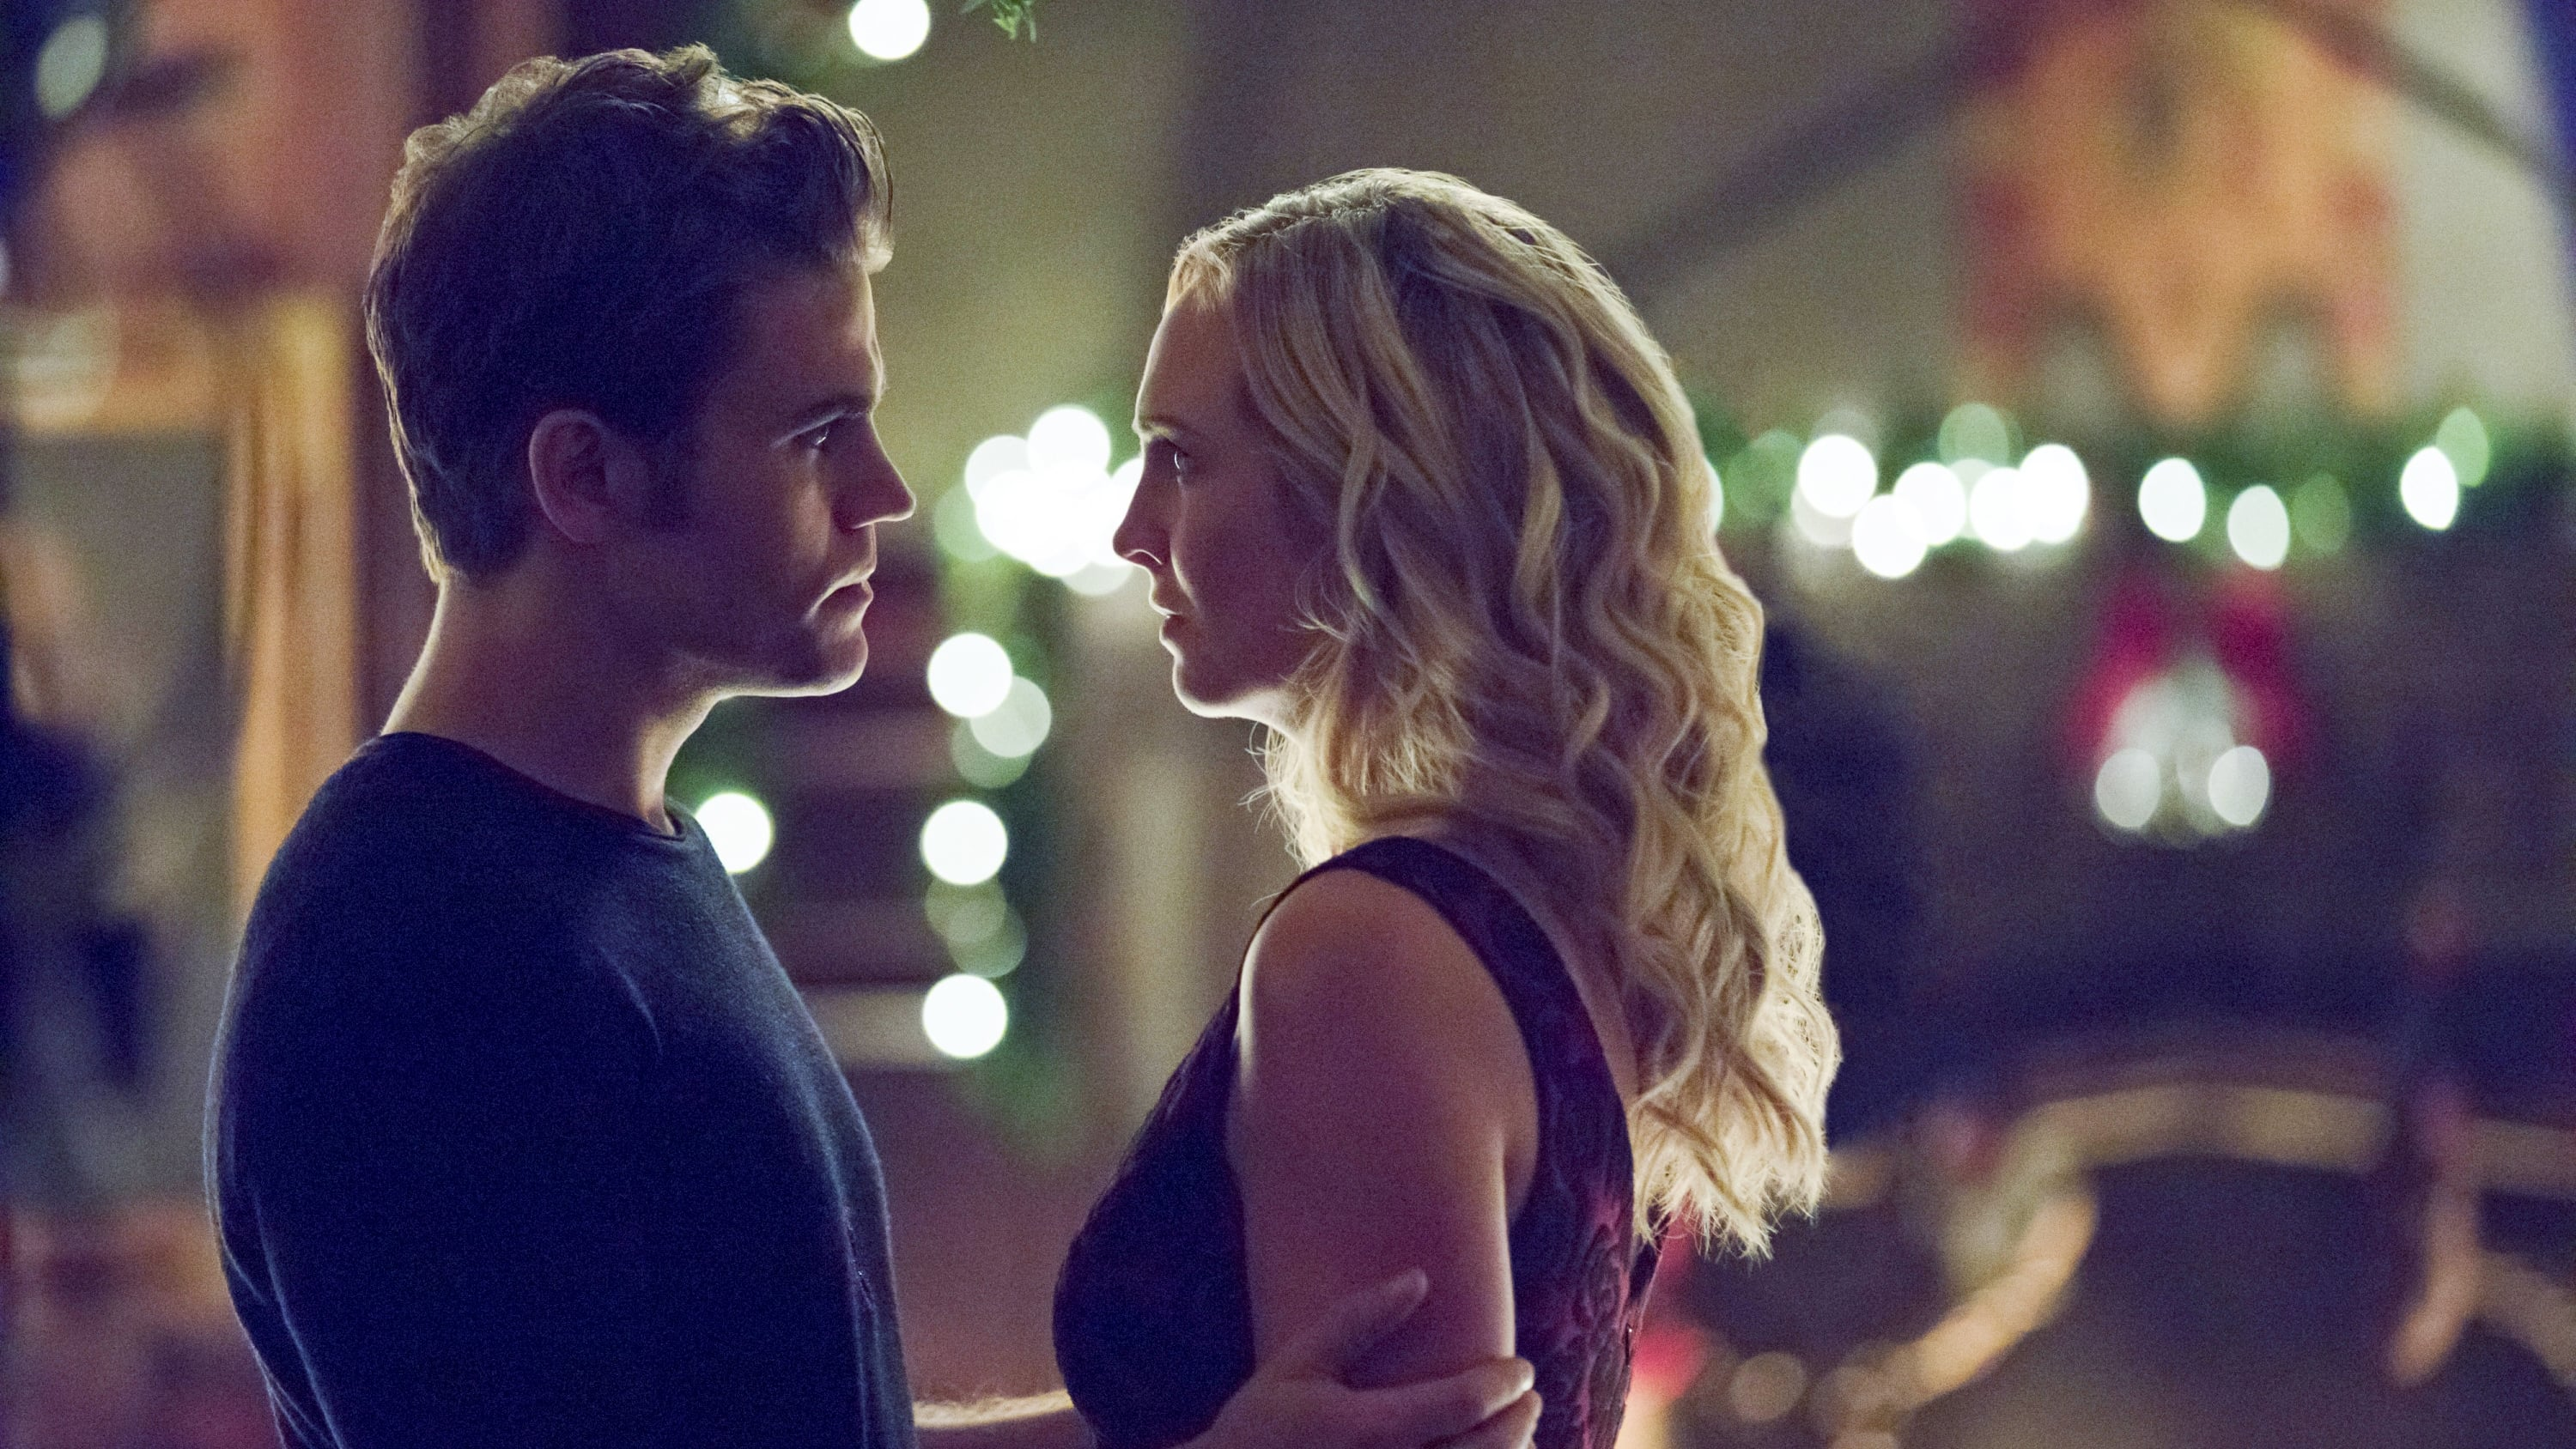 Watch full episodes of The Vampire Diaries and get the latest breaking news exclusive videos and pictures episode recaps and much more at TVGuidecom